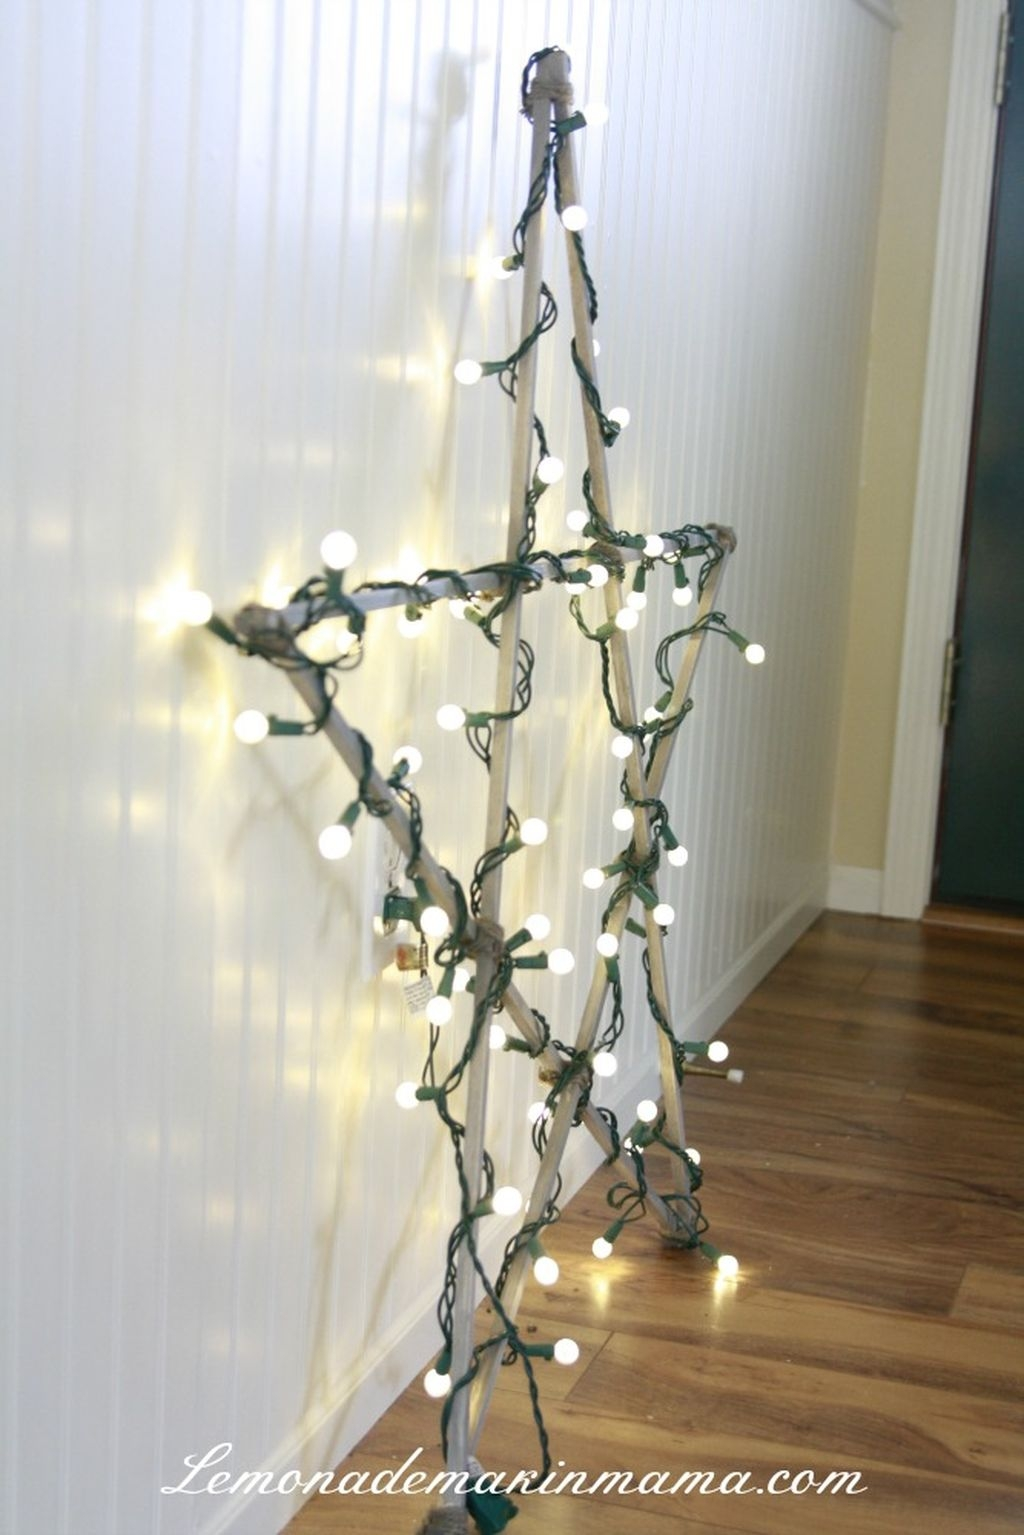 Gergerous Indoor Decoration Ideas With Christmas Lights21